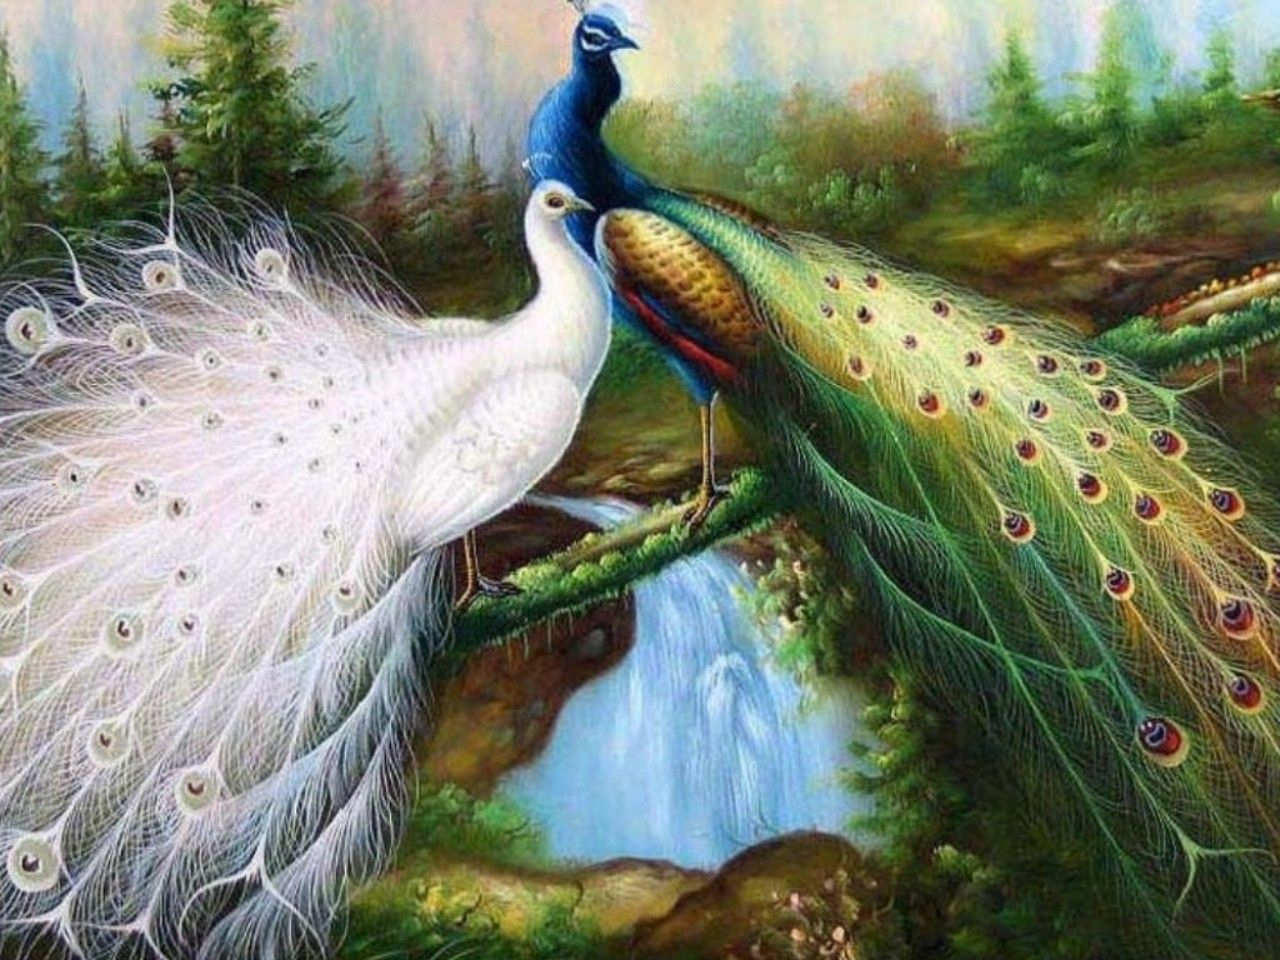 Best Peacock Painting Wallpapers HD Pavo real